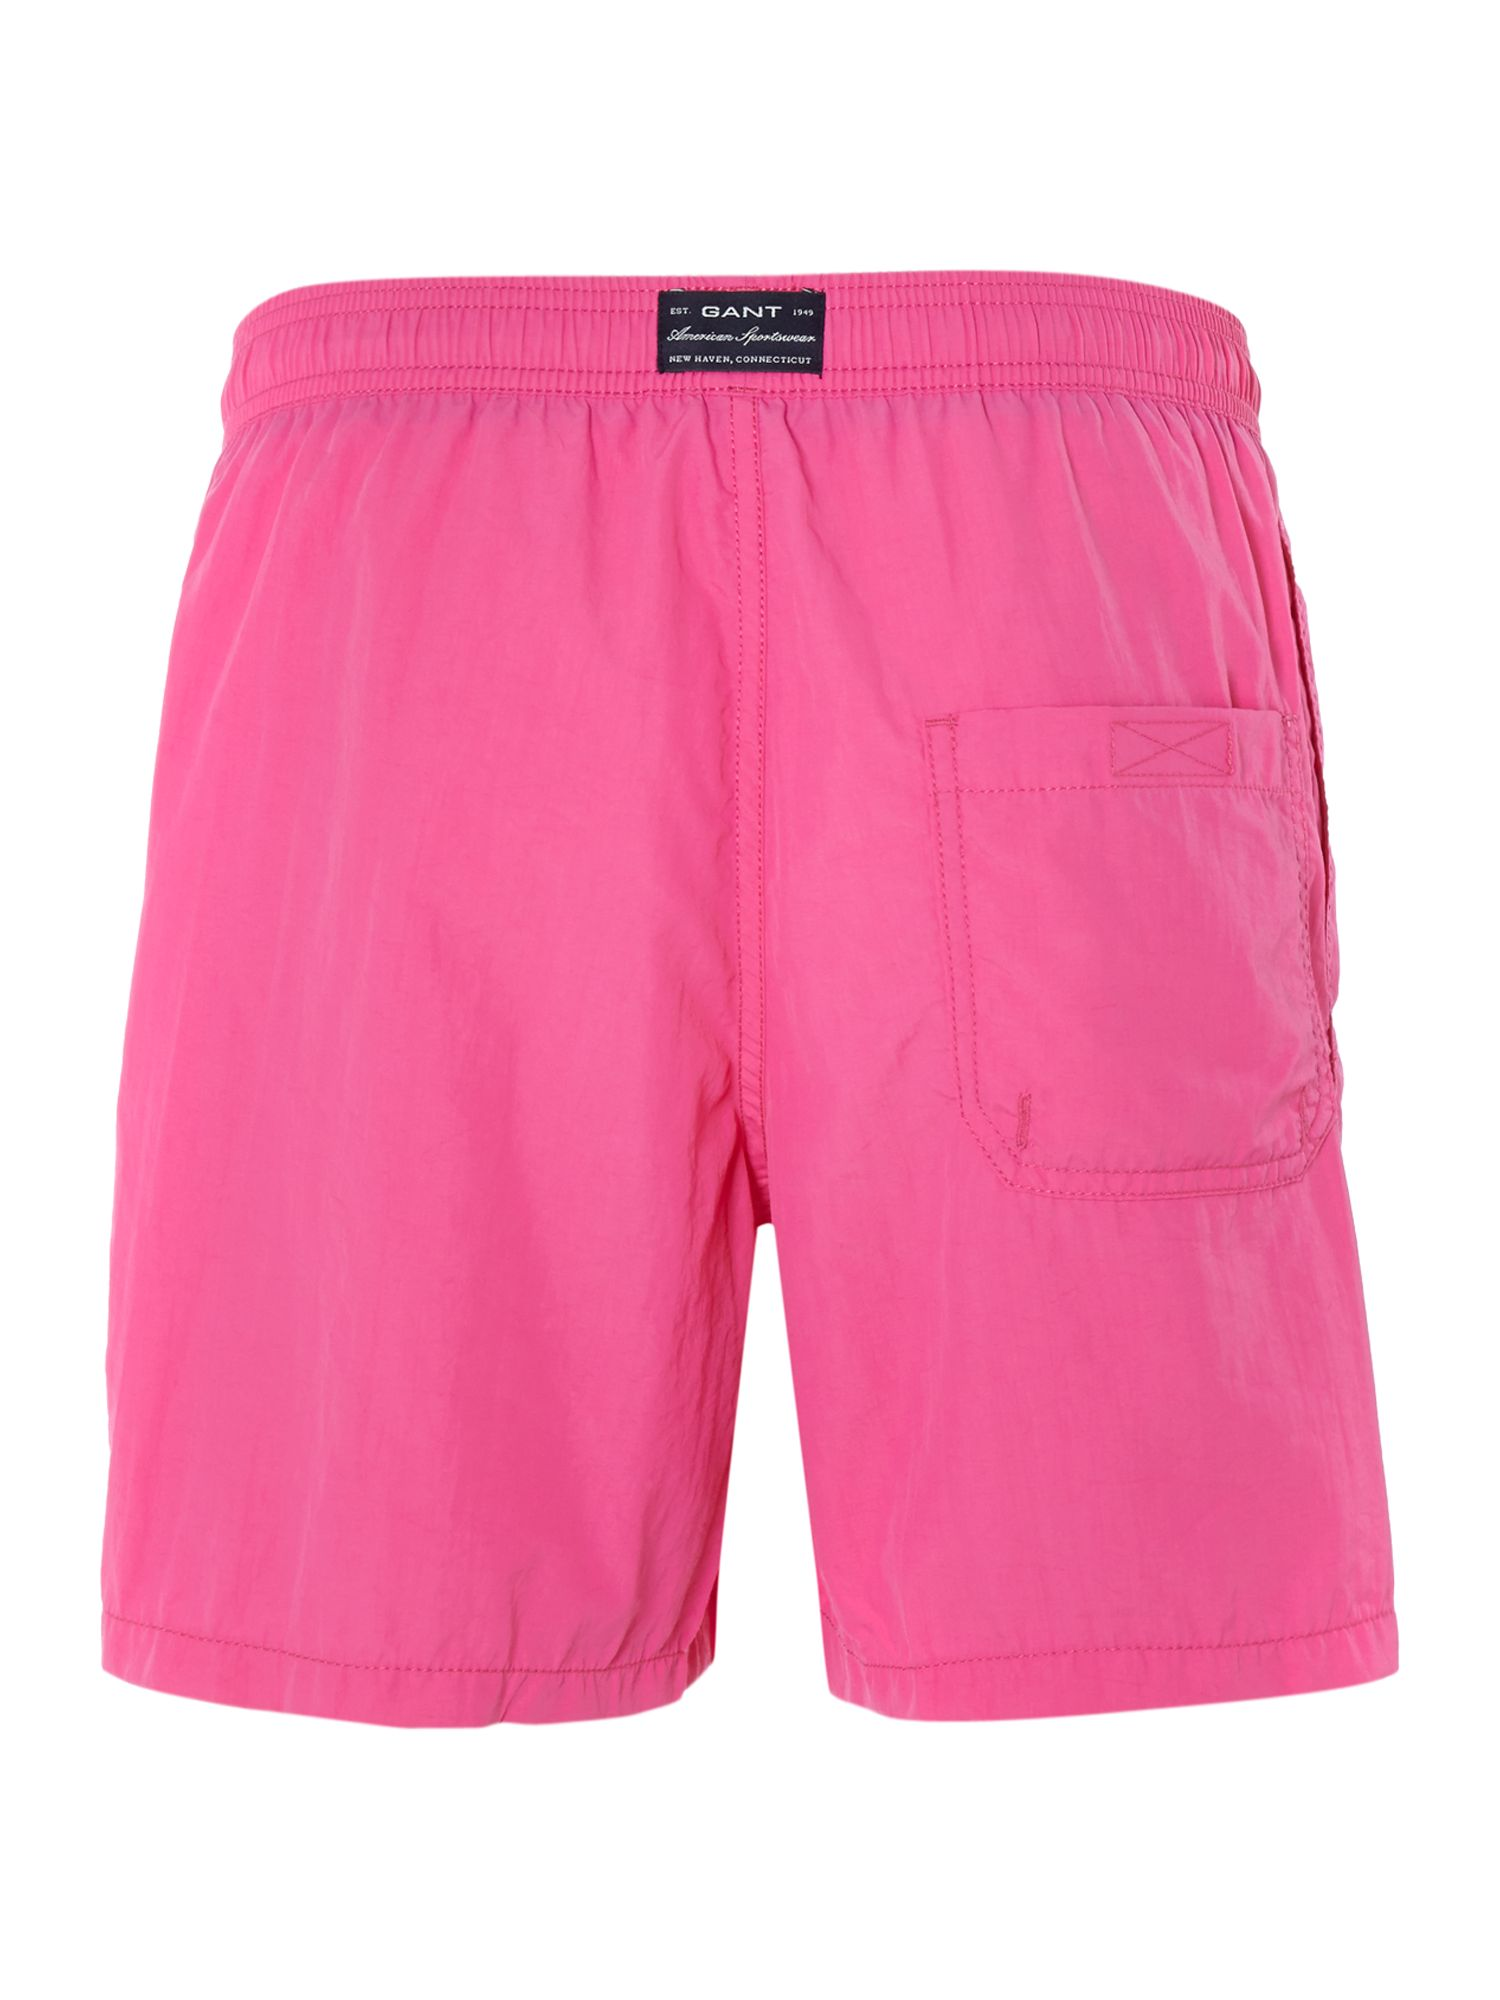 Plain boxer swim shorts